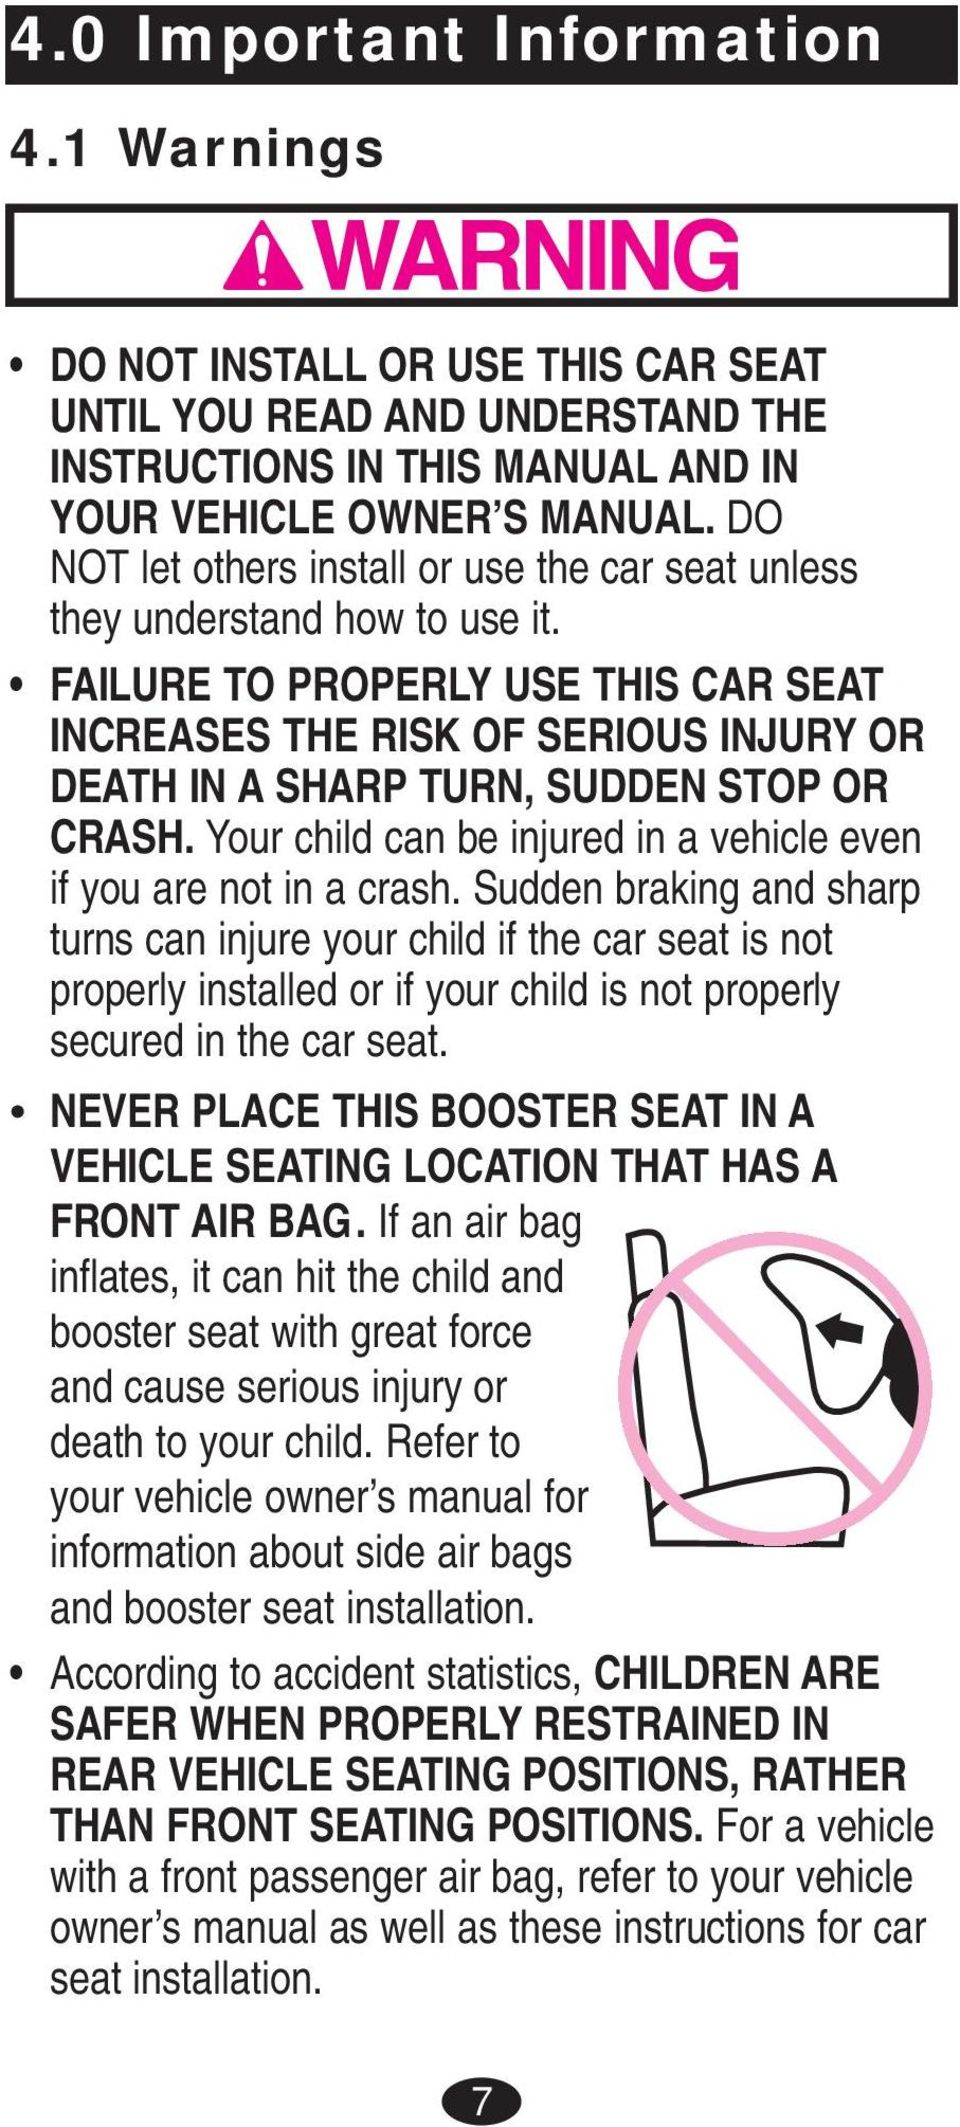 FAILURE TO PROPERLY USE THIS CAR SEAT INCREASES THE RISK OF SERIOUS INJURY OR DEATH IN A SHARP TURN, SUDDEN STOP OR CRASH. Your child can be injured in a vehicle even if you are not in a crash.